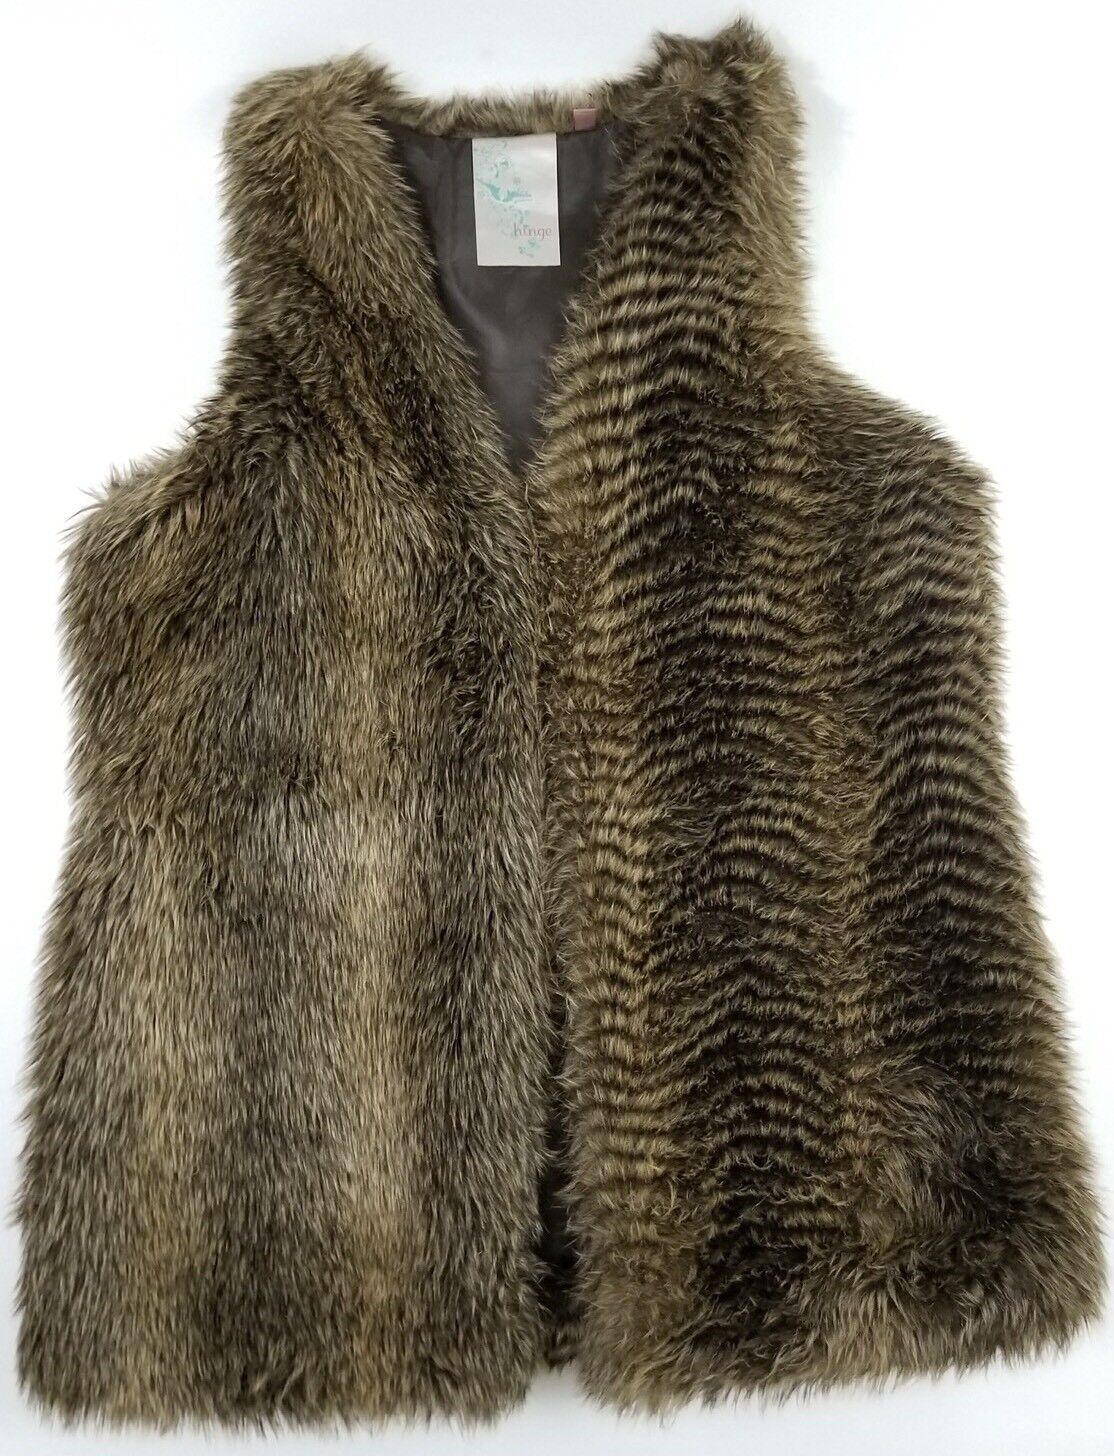 Hinge Womens Size Large Faux Fur Open Front Vest Sweater Long Lined Change Print